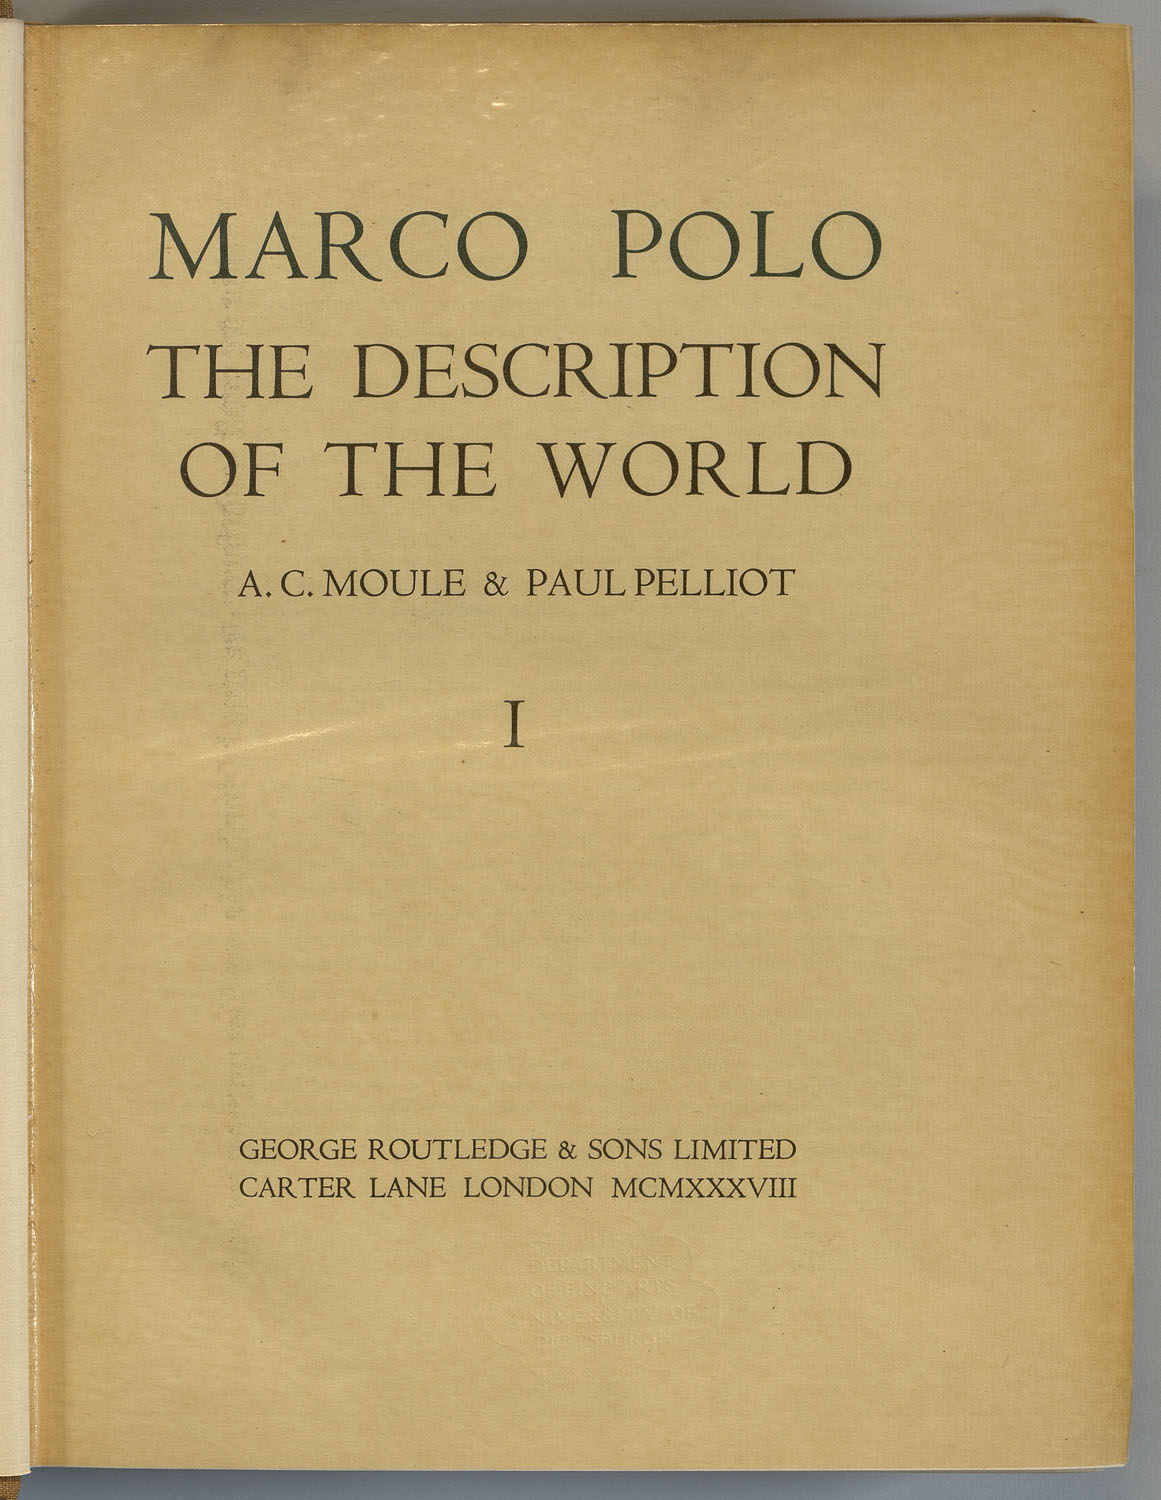 Title page of The Description of the World